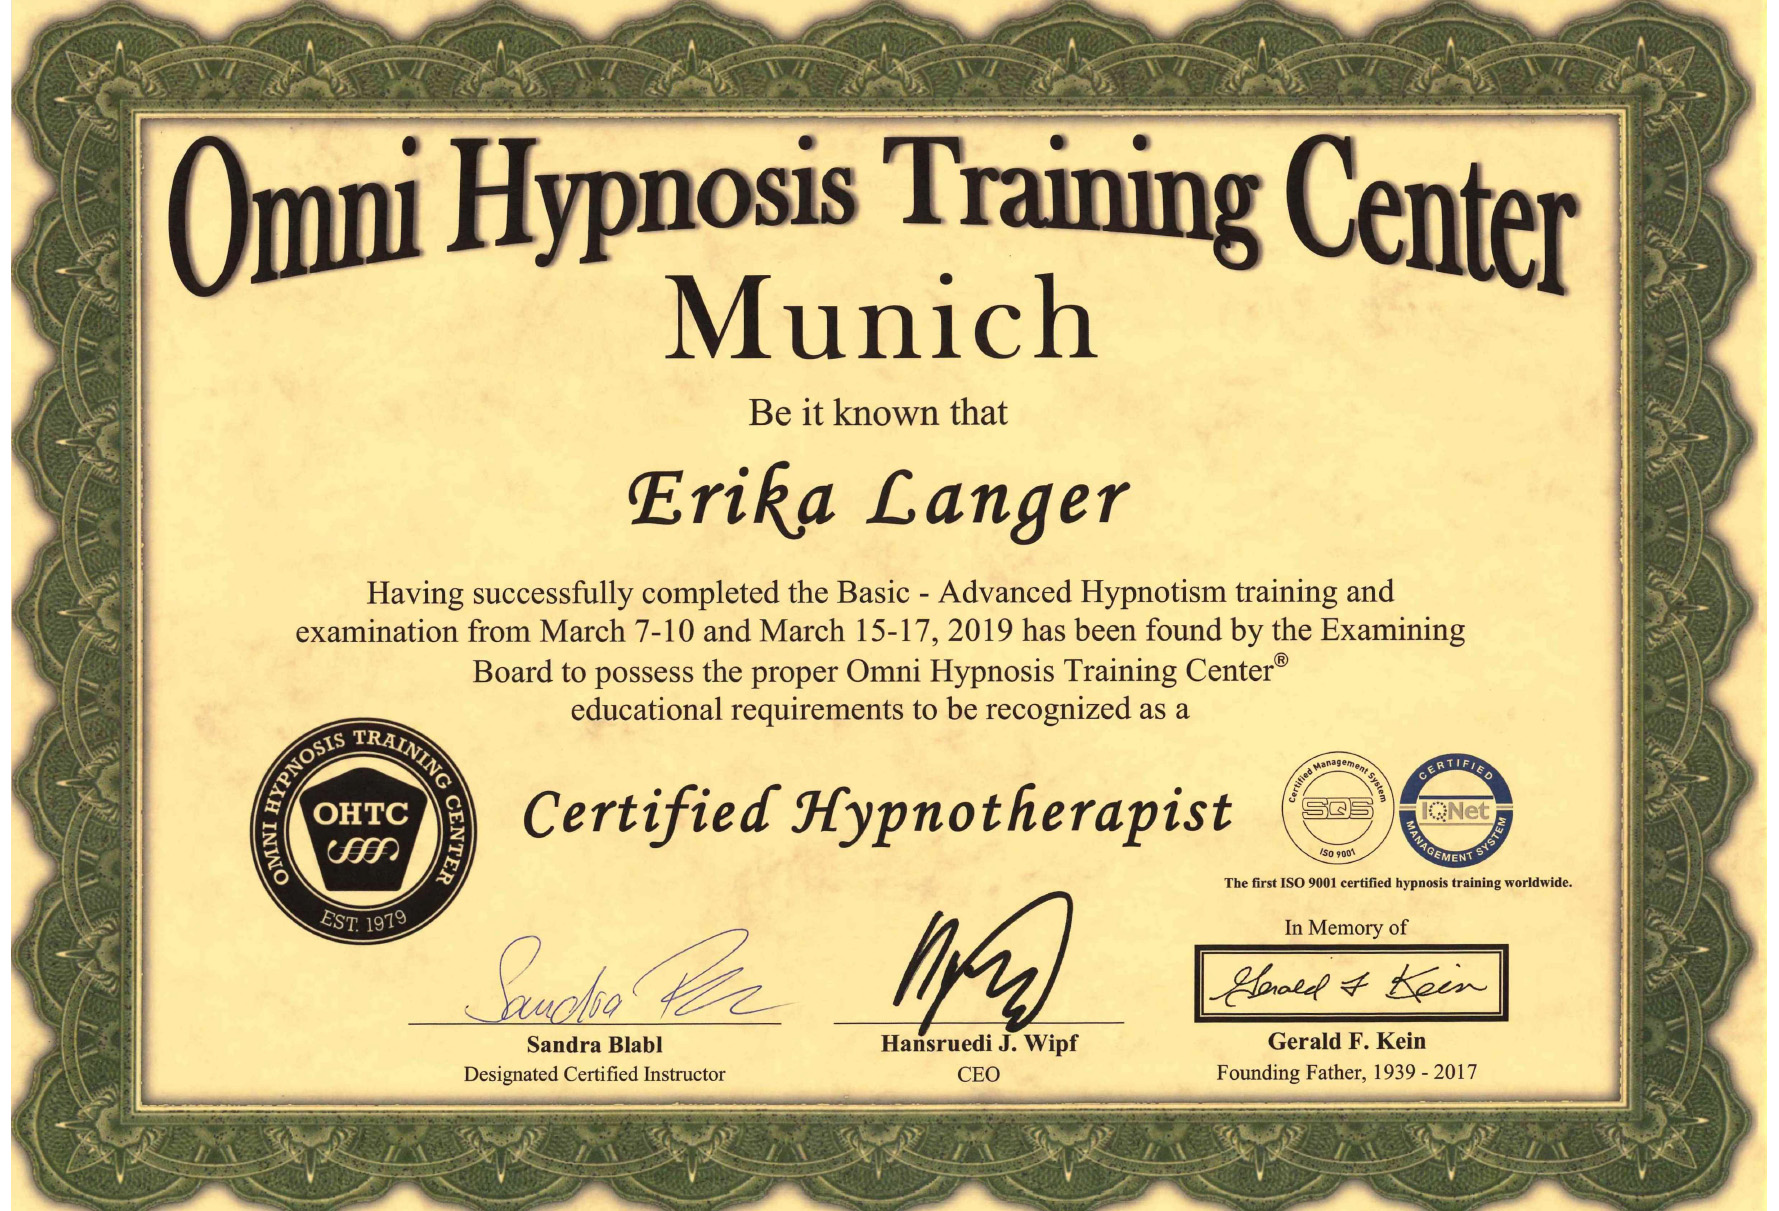 Erika Langer - Zertifikat Omni Hypnosis Trainings Center Munich Hypnotherapist